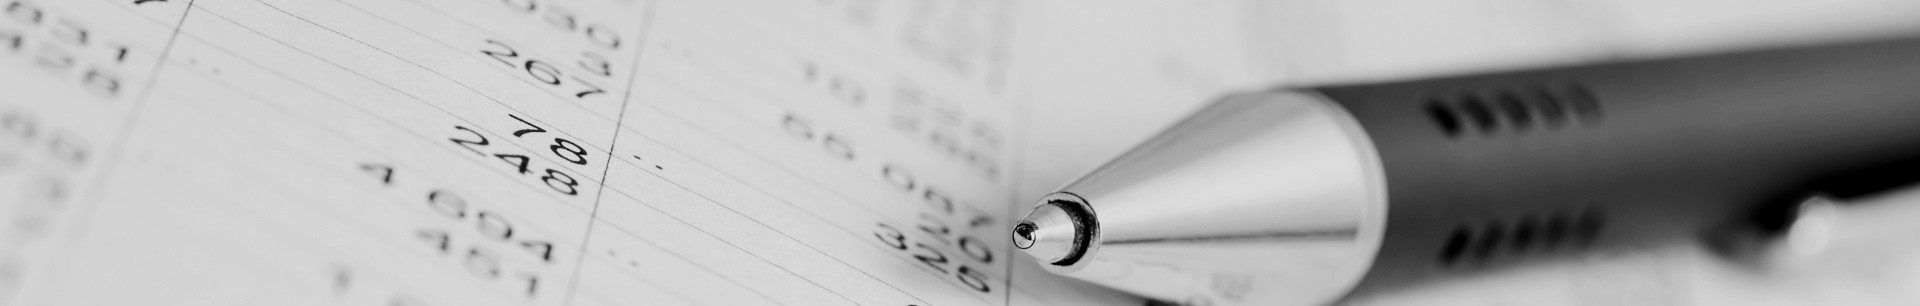 pen-on-accounting-documents